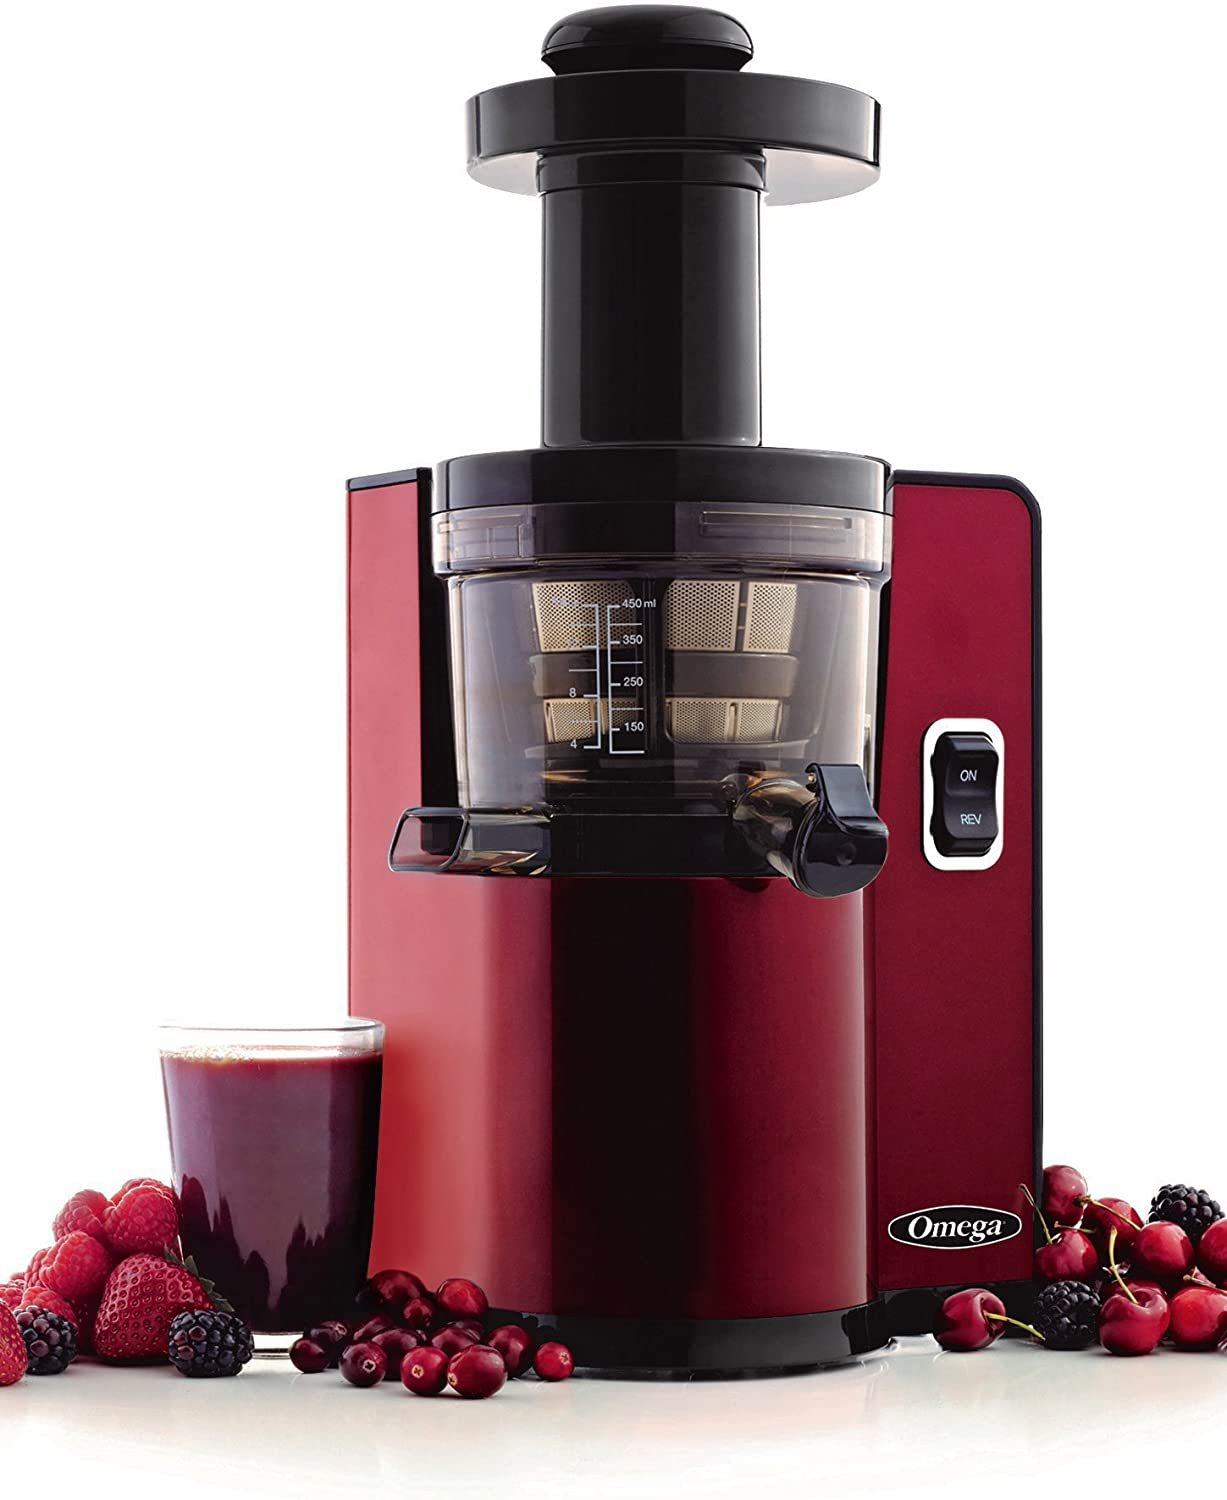 Best Cold Press Juicer 2021 (Reviews & Top Picks) 6